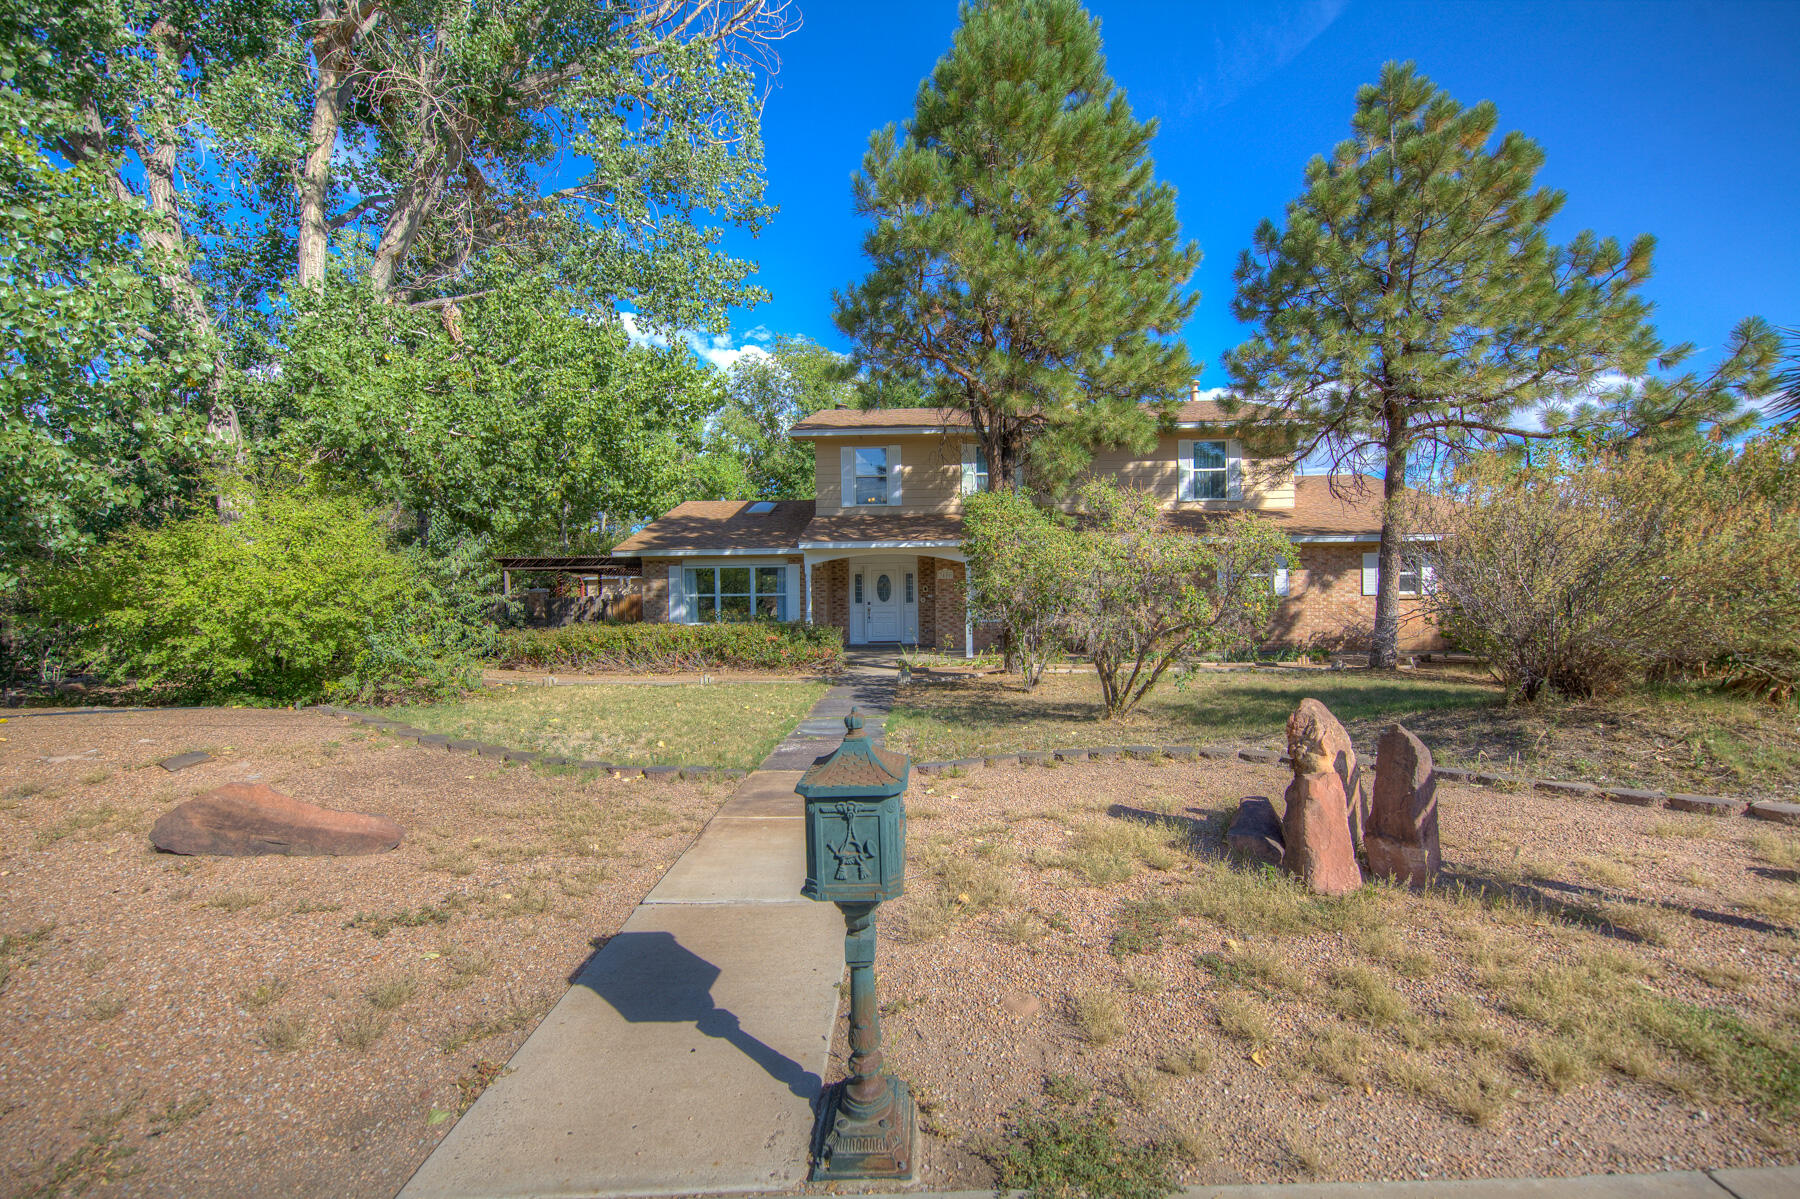 Great double lot .50 acre on corner. Large home 2700 sq ft 3 bedroom 2.5 bath. Master is up-stairs with views. Make offer today. New roof.